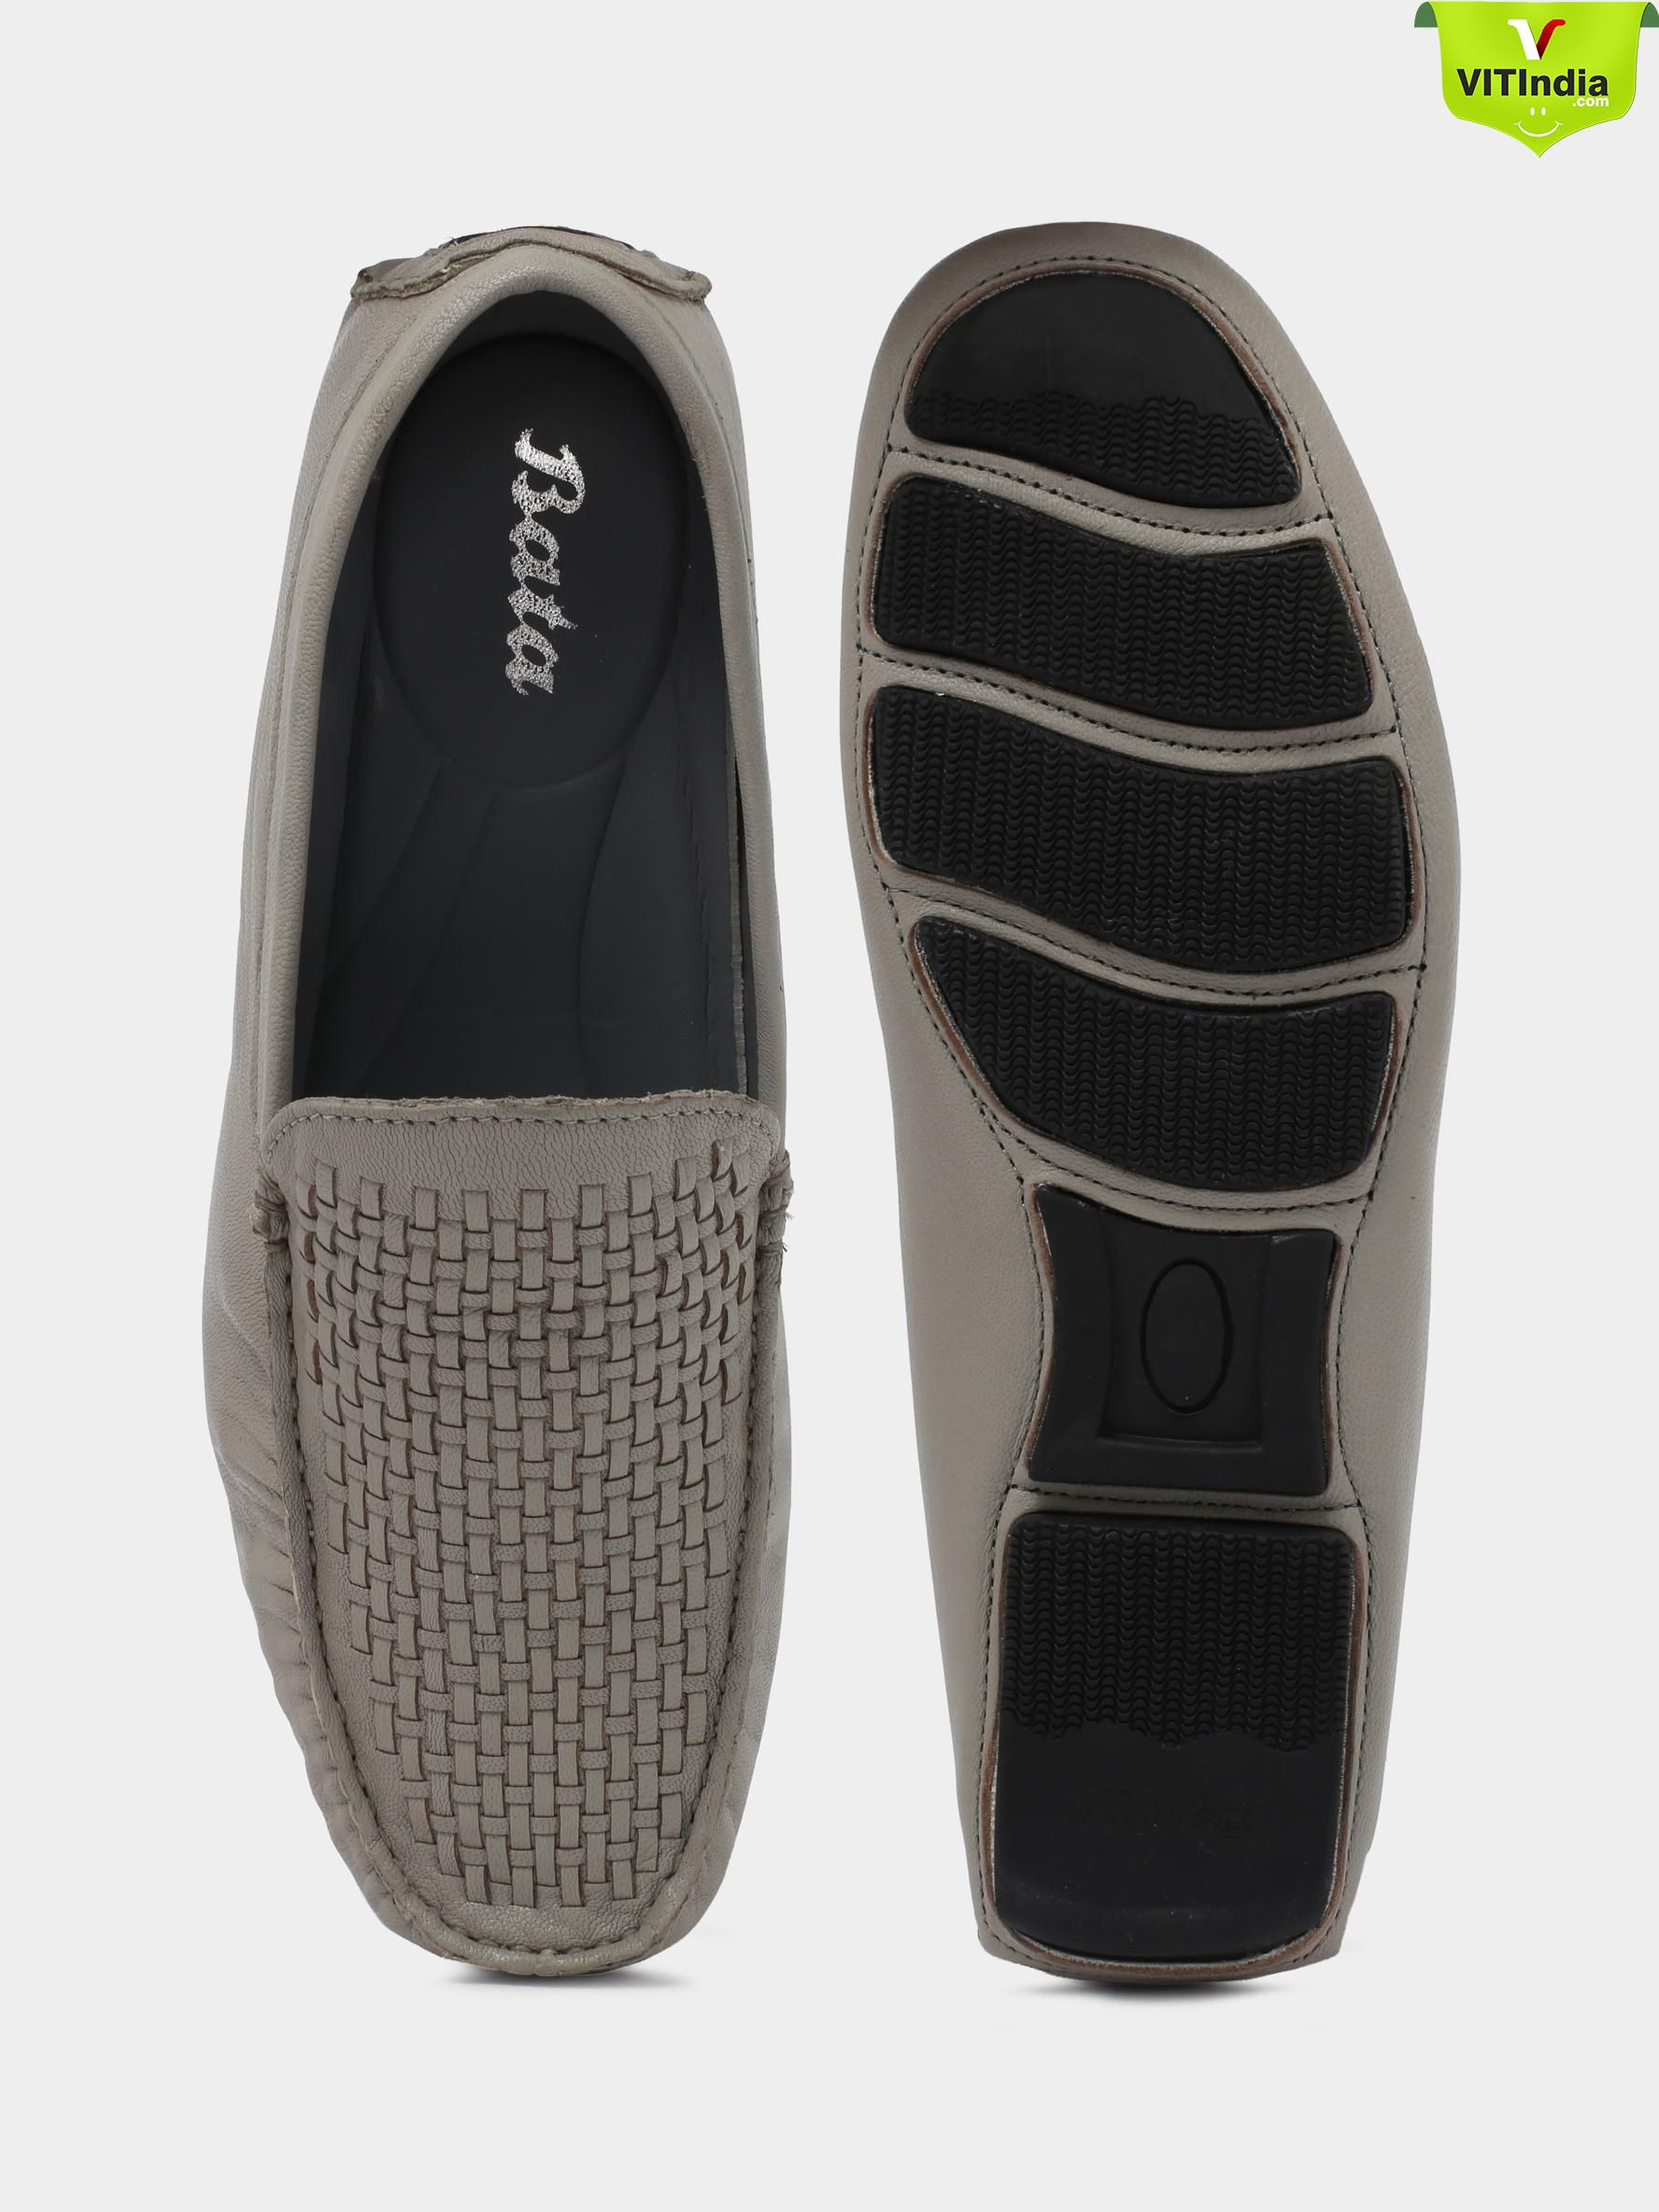 103b3b239de6b BATA MEN GREY Loafers in Madurai only at vales international trade. For  more details kindly